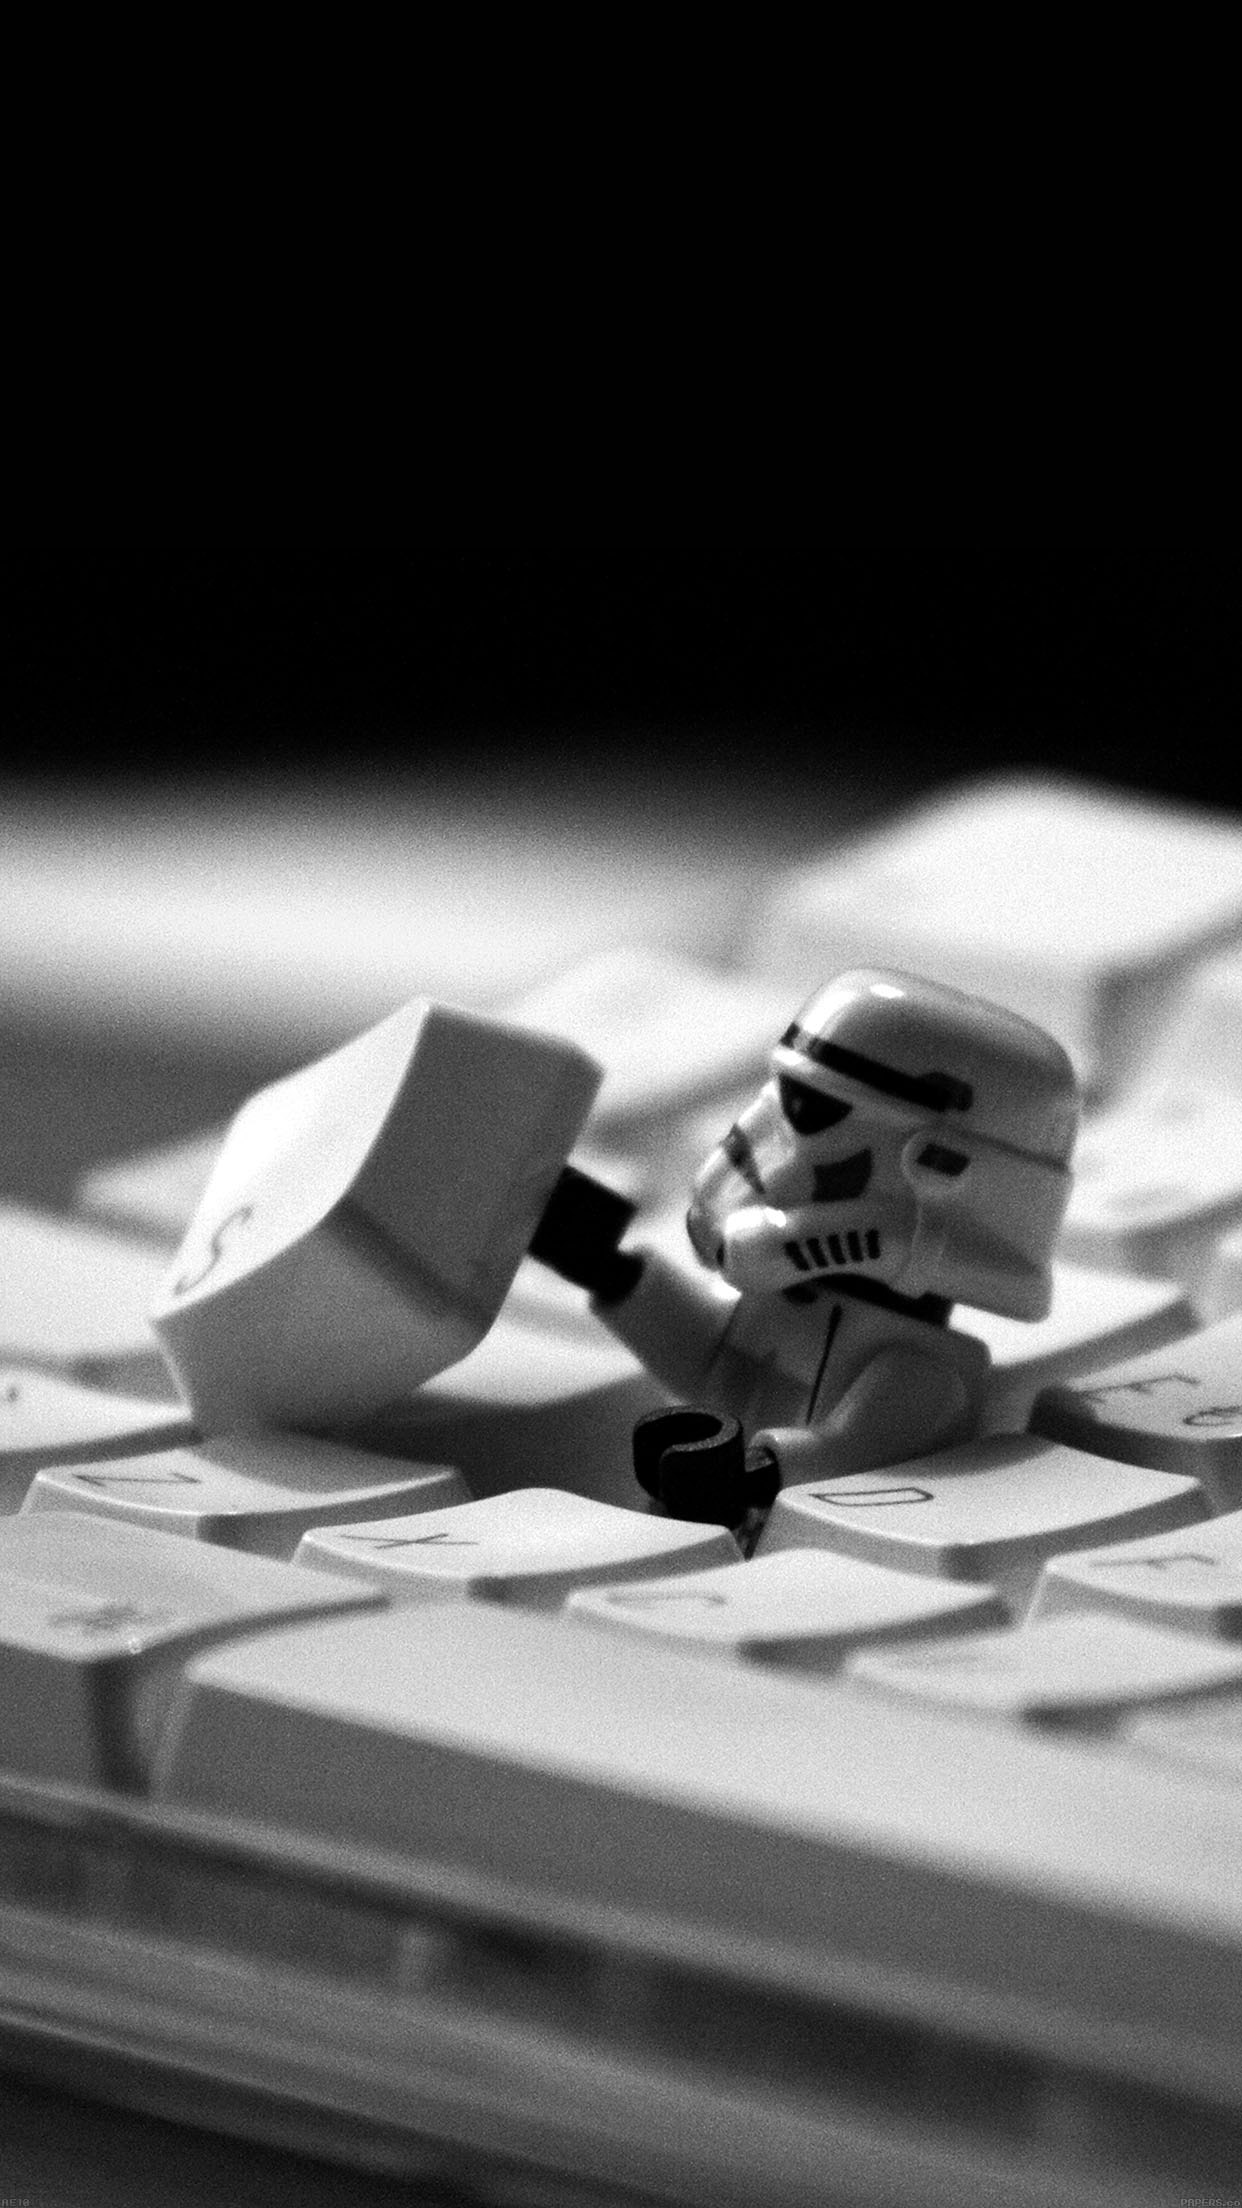 storm-trooper-starwars-keyboard-film-34-iphone6-plus-wallpaper